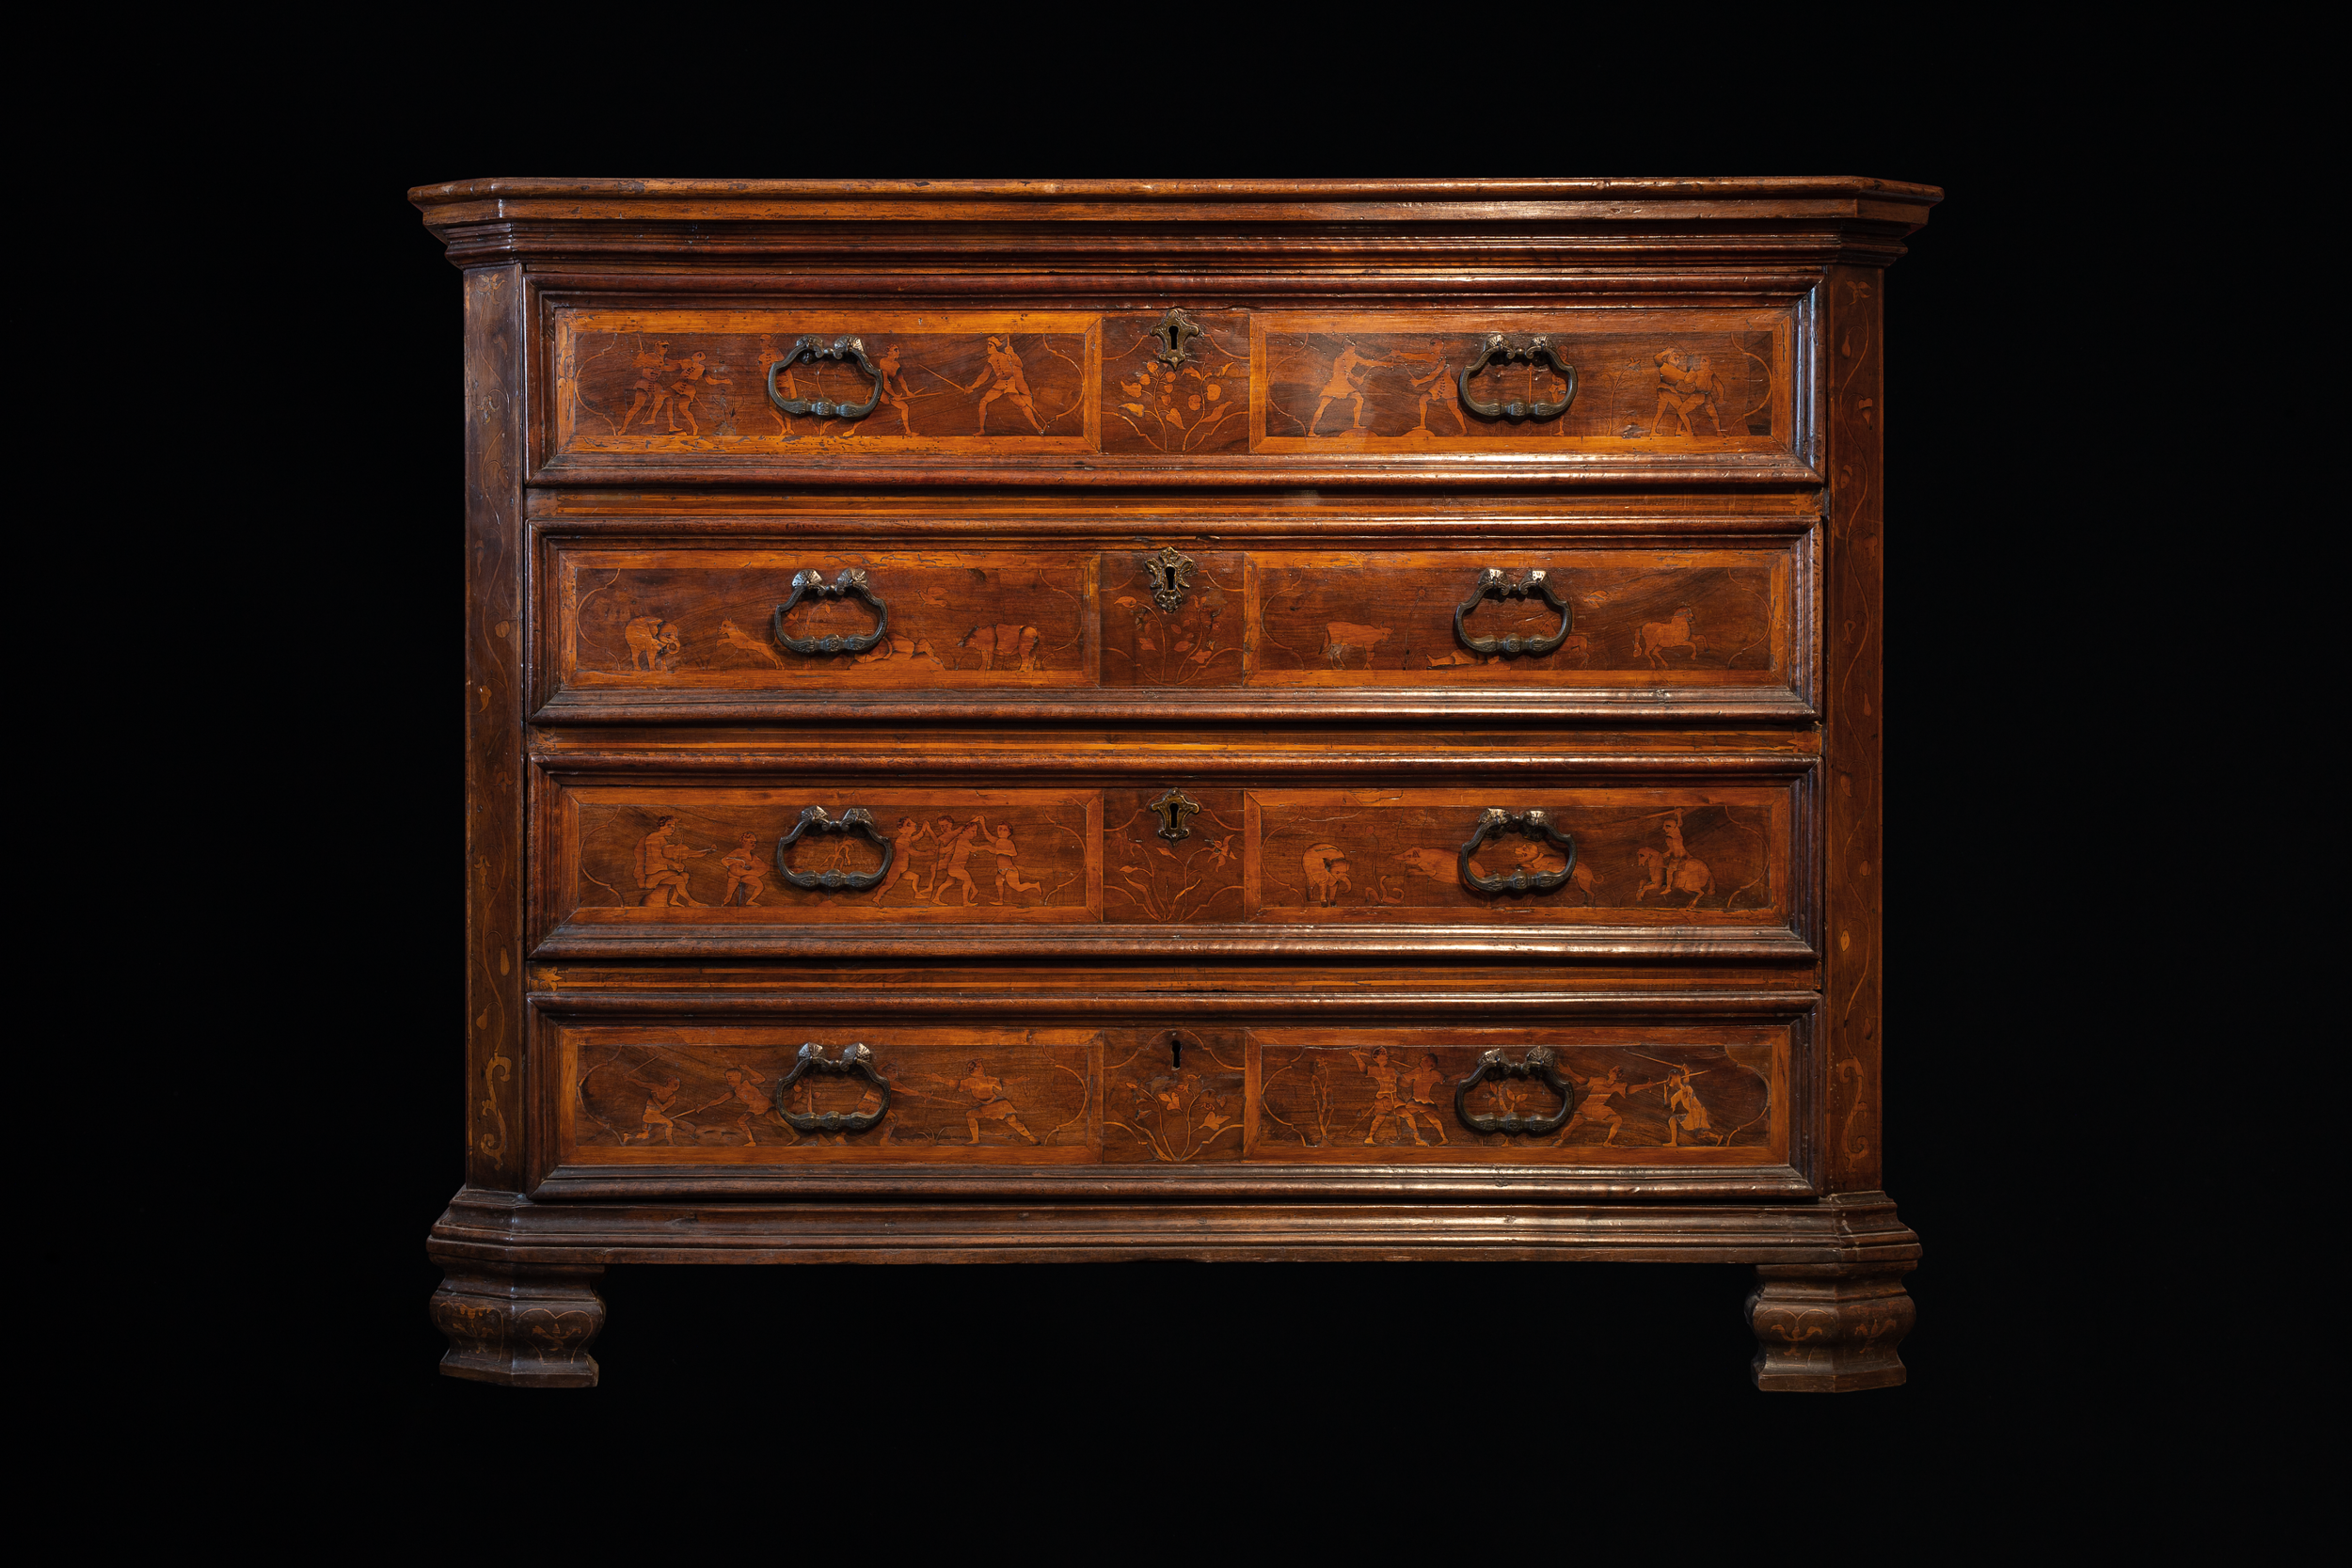 Cabinet (chest of drawers - cabinet transformable into a desk of the type 'canterano'), Lombardy, 1590-1630. Wood, briar, metal. 1439 x 1120 x 610 mm. This cabinet from a noble Milanese family is connected to the figure of the master Camillo Agrippa and his treatise. The four drawers' decoration matches the images from his fight book.